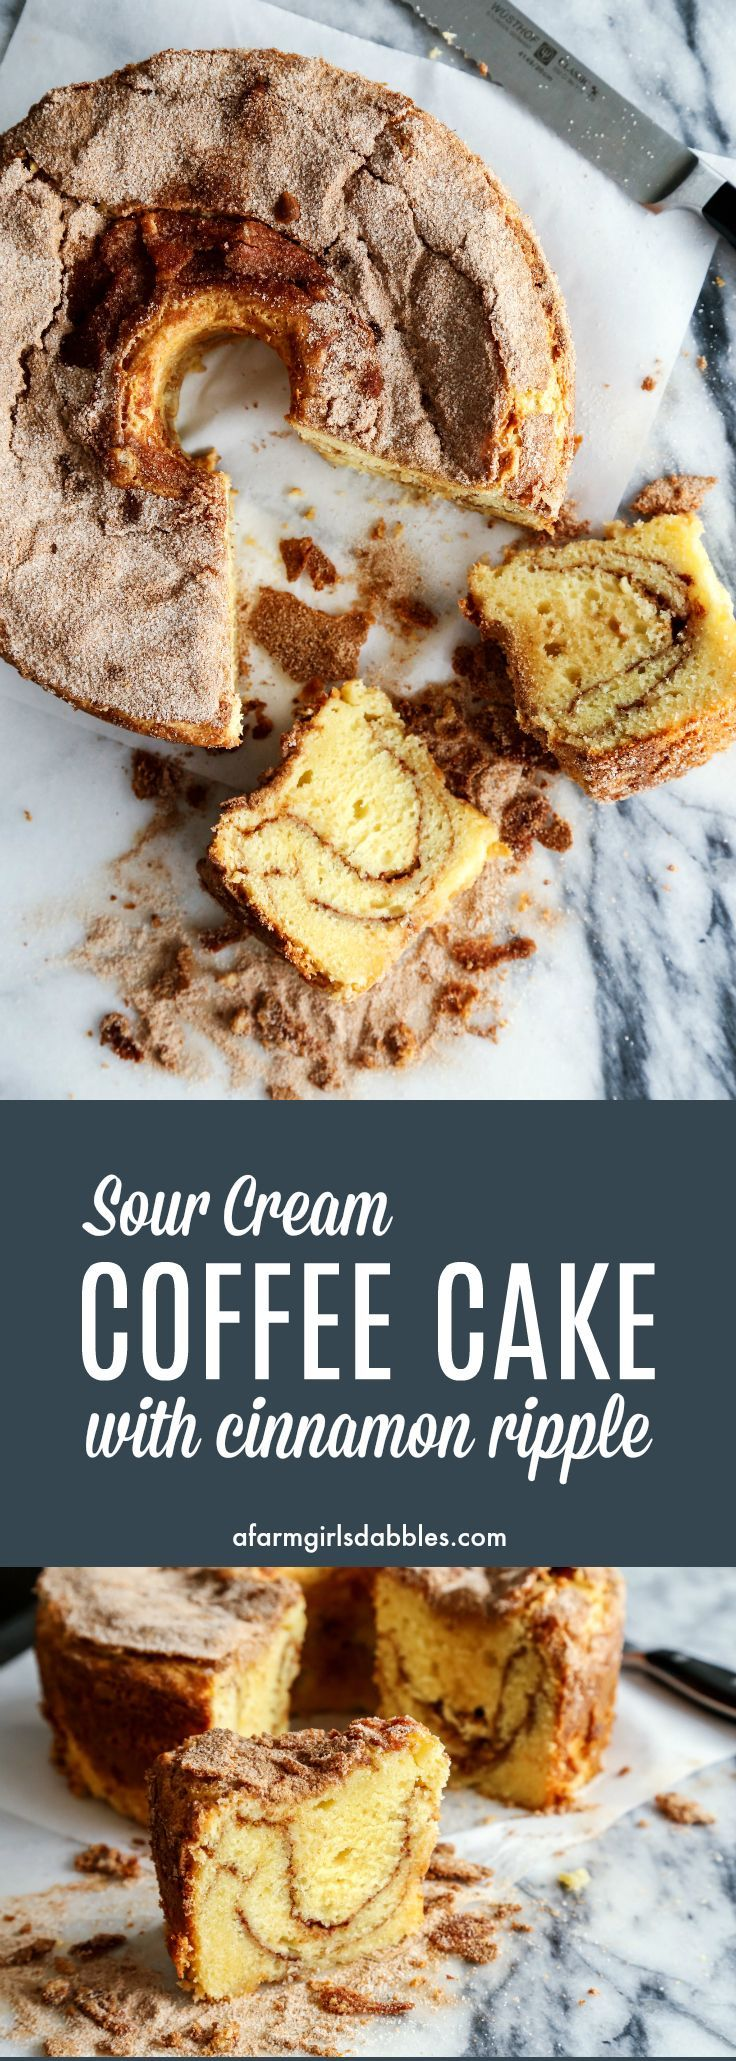 Sour Cream Coffee Cake with Cinnamon Ripple from afarmgirlsdabbles.com - The best coffee cakes are made with sour cream, and with a good amount of cinnamon sugar. You will not be disappointed with this easy recipe! #coffeecake #sourcream #baking #cinnamon